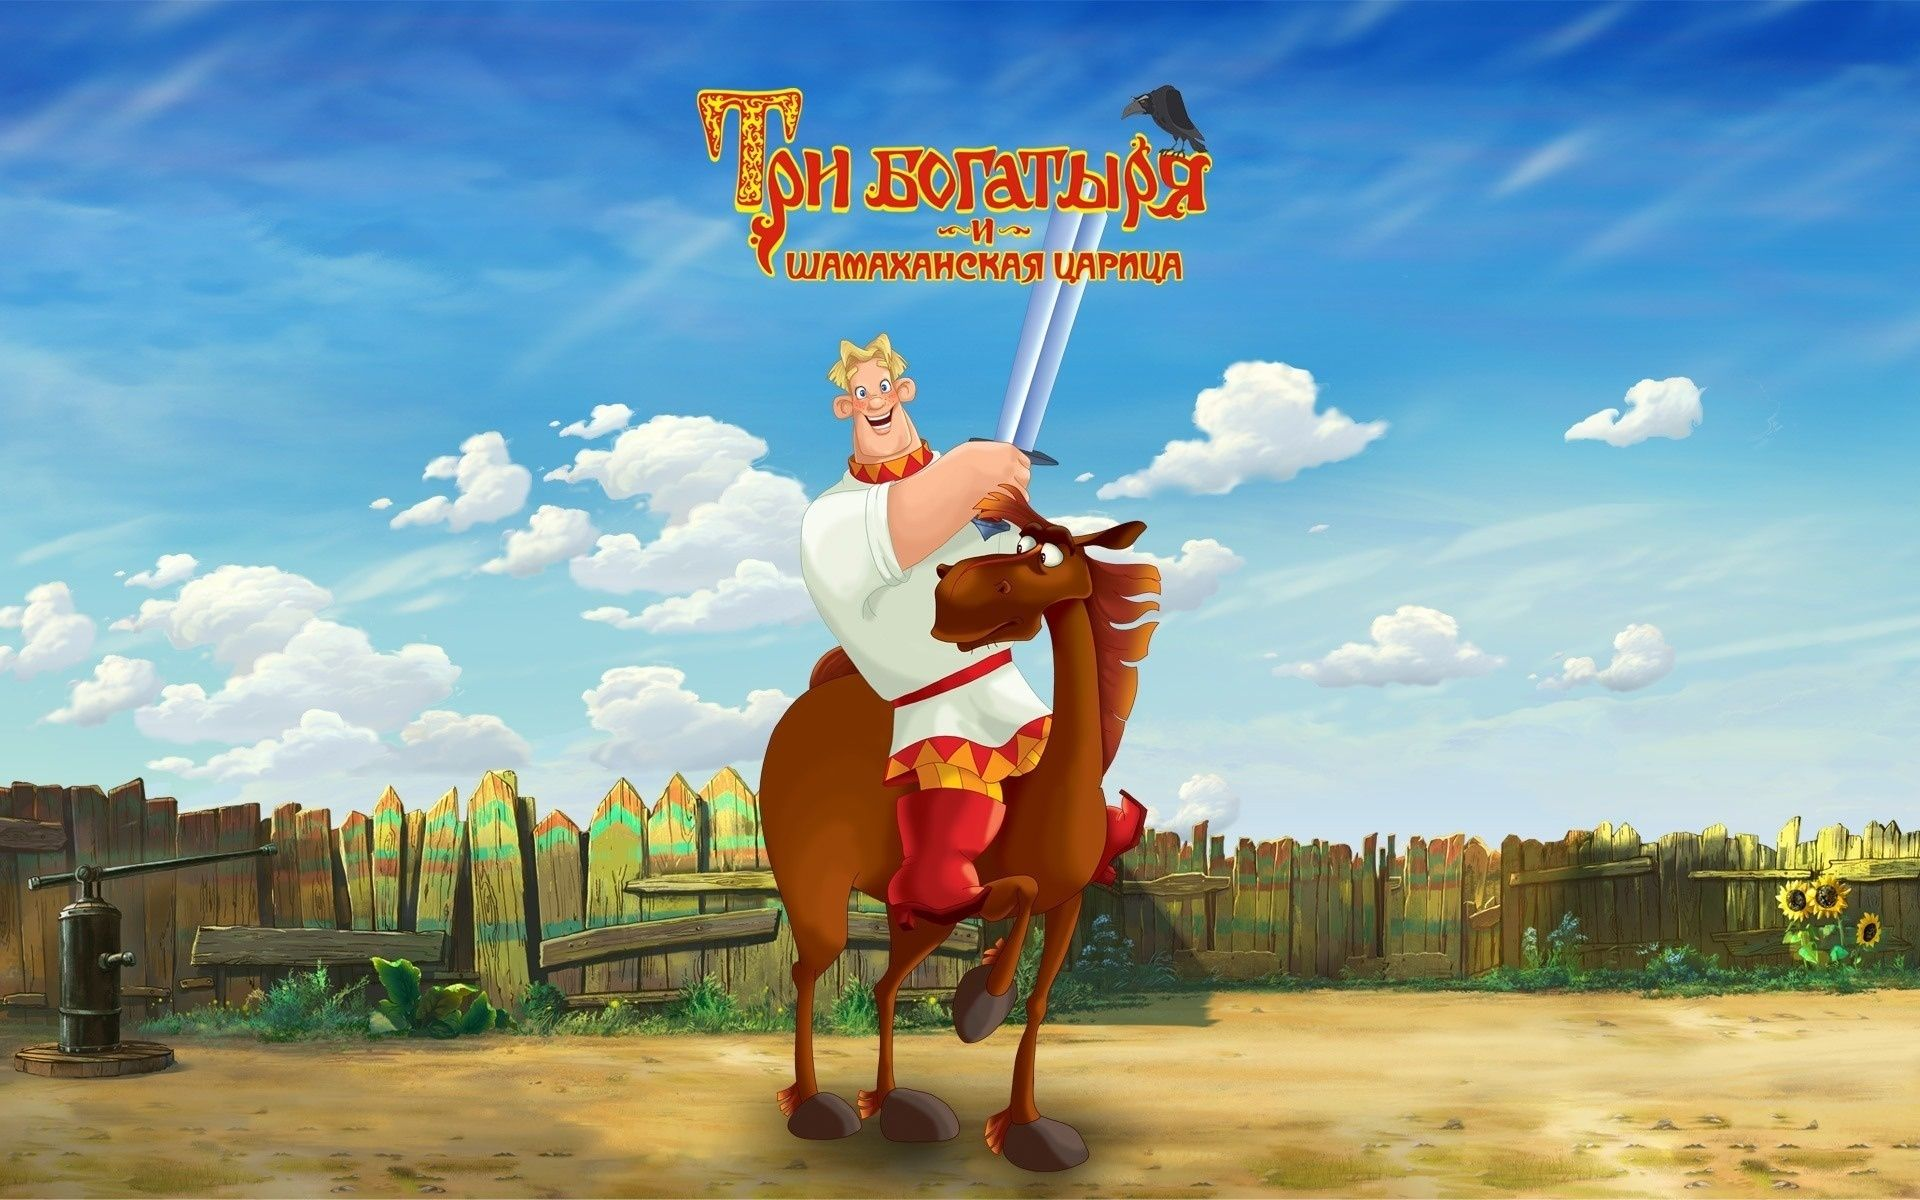 Cartoon three heroes and shamahanskaya Queen